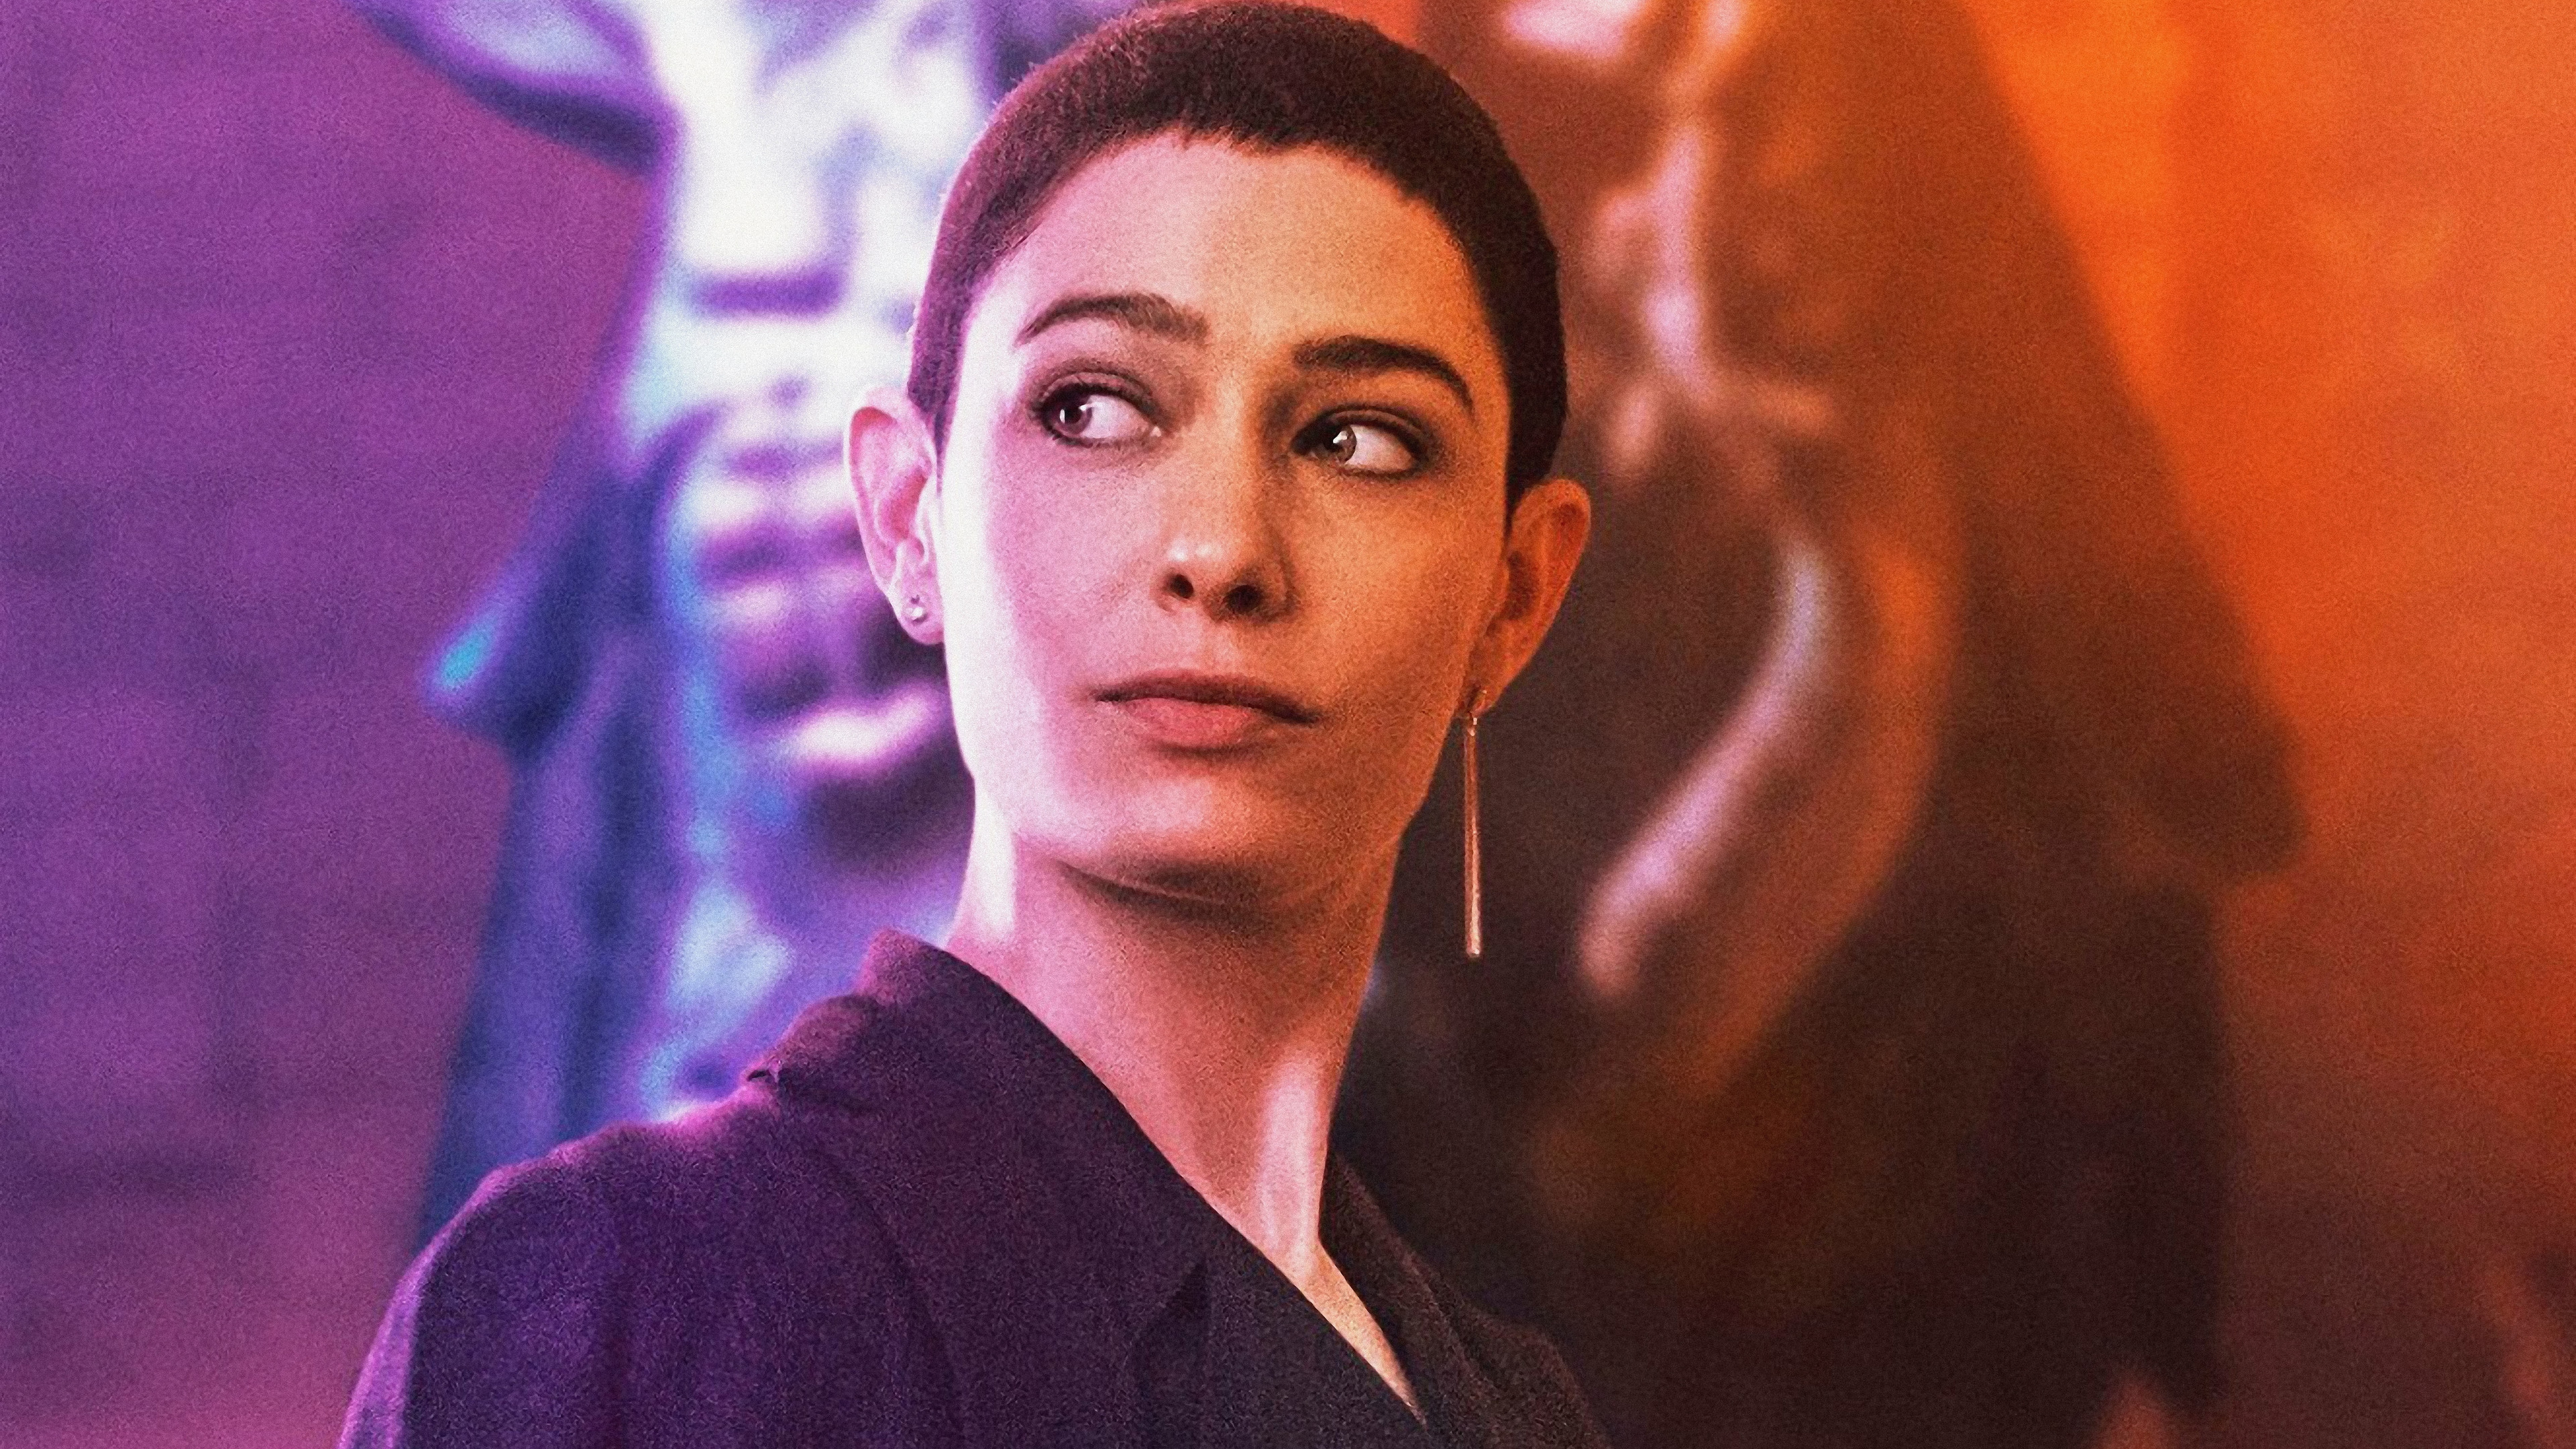 asia kate dillon in john wick chapter 3 parabellum 2019 4k 1555208394 - Asia Kate Dillon In John Wick Chapter 3 Parabellum 2019 4k - movies wallpapers, john wick chapter 3 wallpapers, john wick 3 wallpapers, john wick 3 parabellum wallpapers, hd-wallpapers, 4k-wallpapers, 2019 movies wallpapers